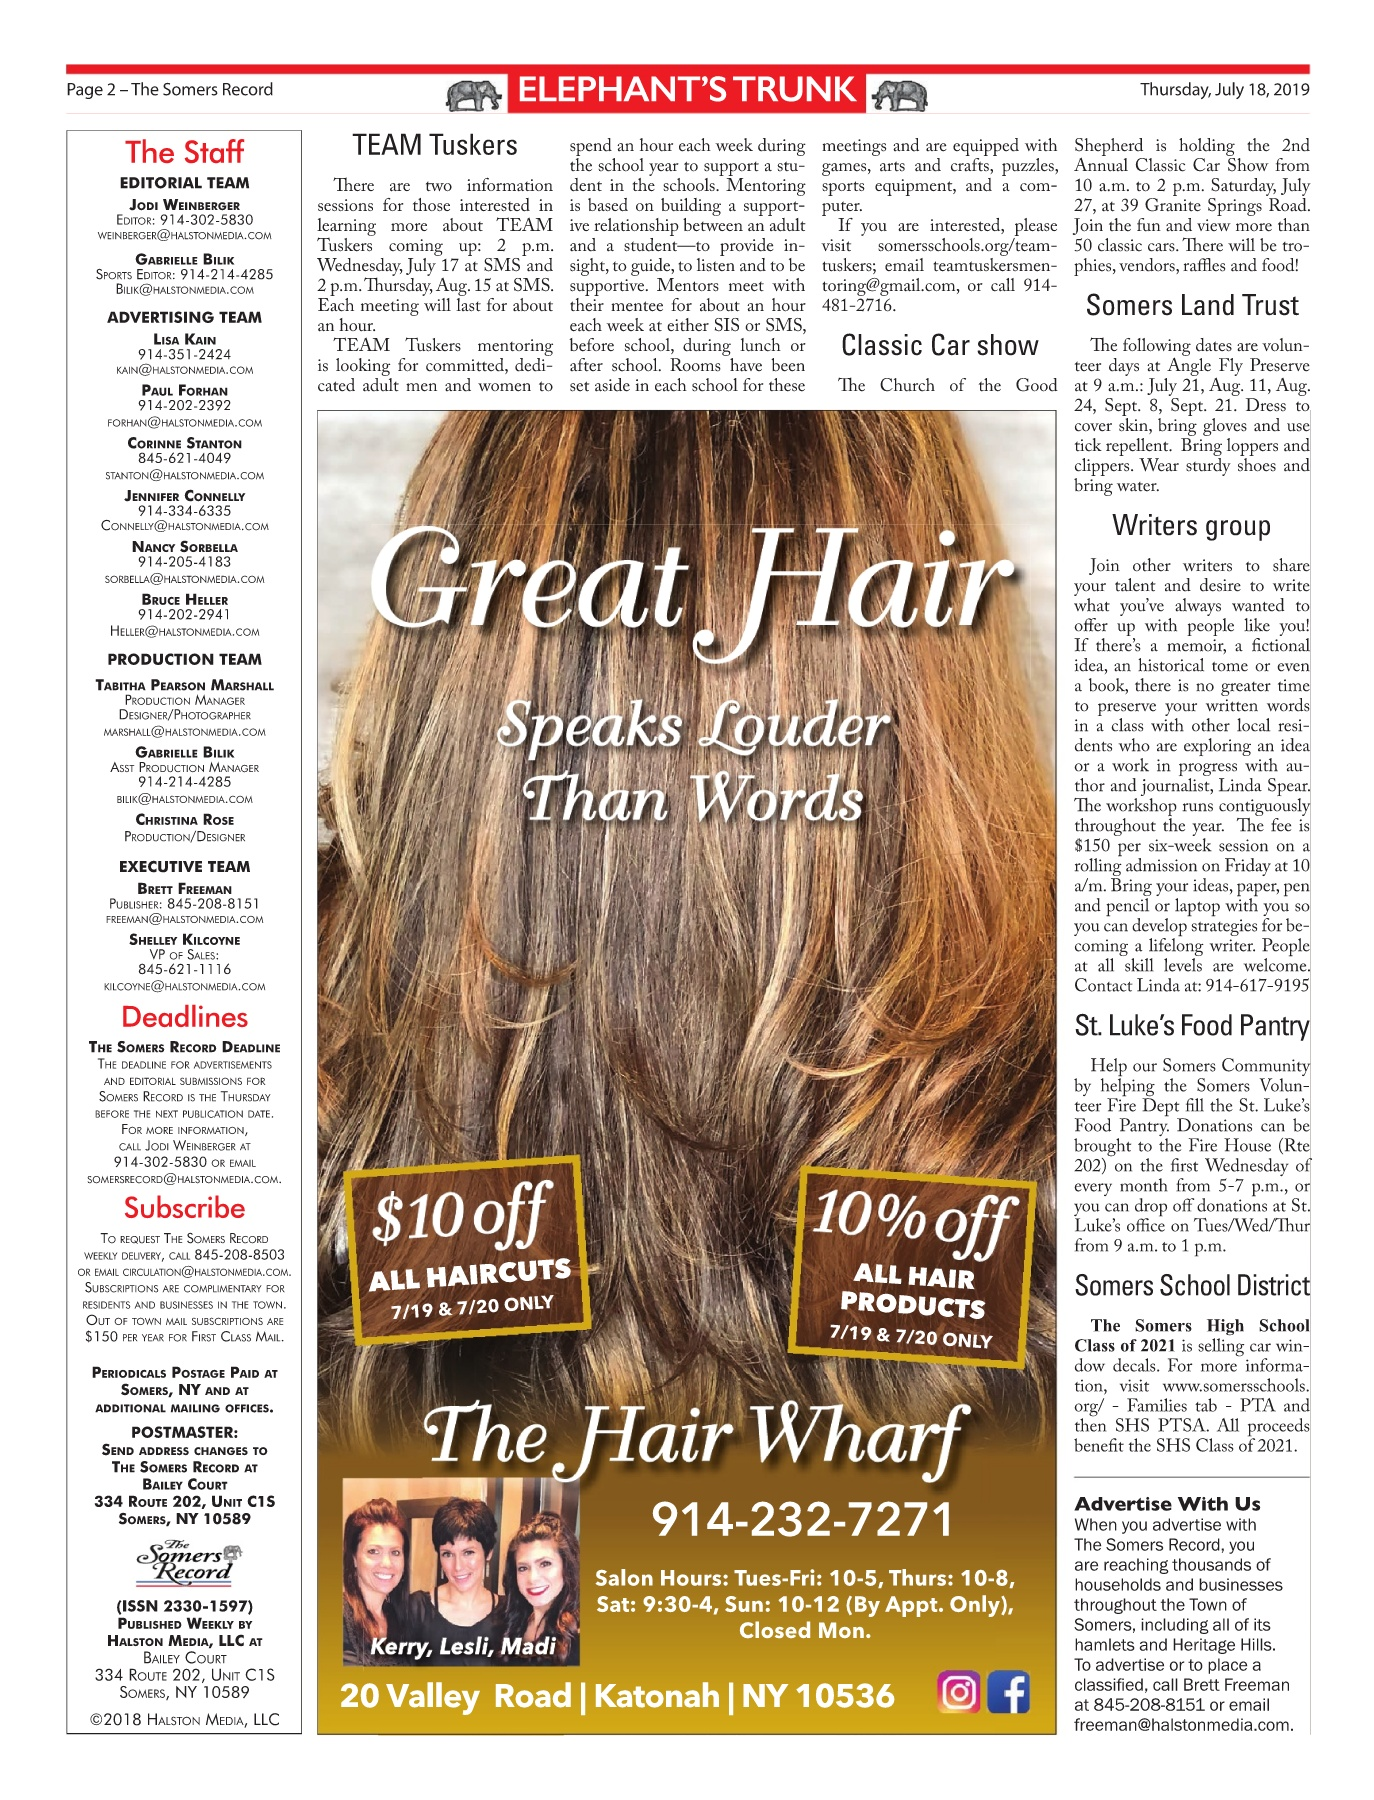 The Somers Record 07 18 19 Pages 1 - 32 - Text Version | AnyFlip